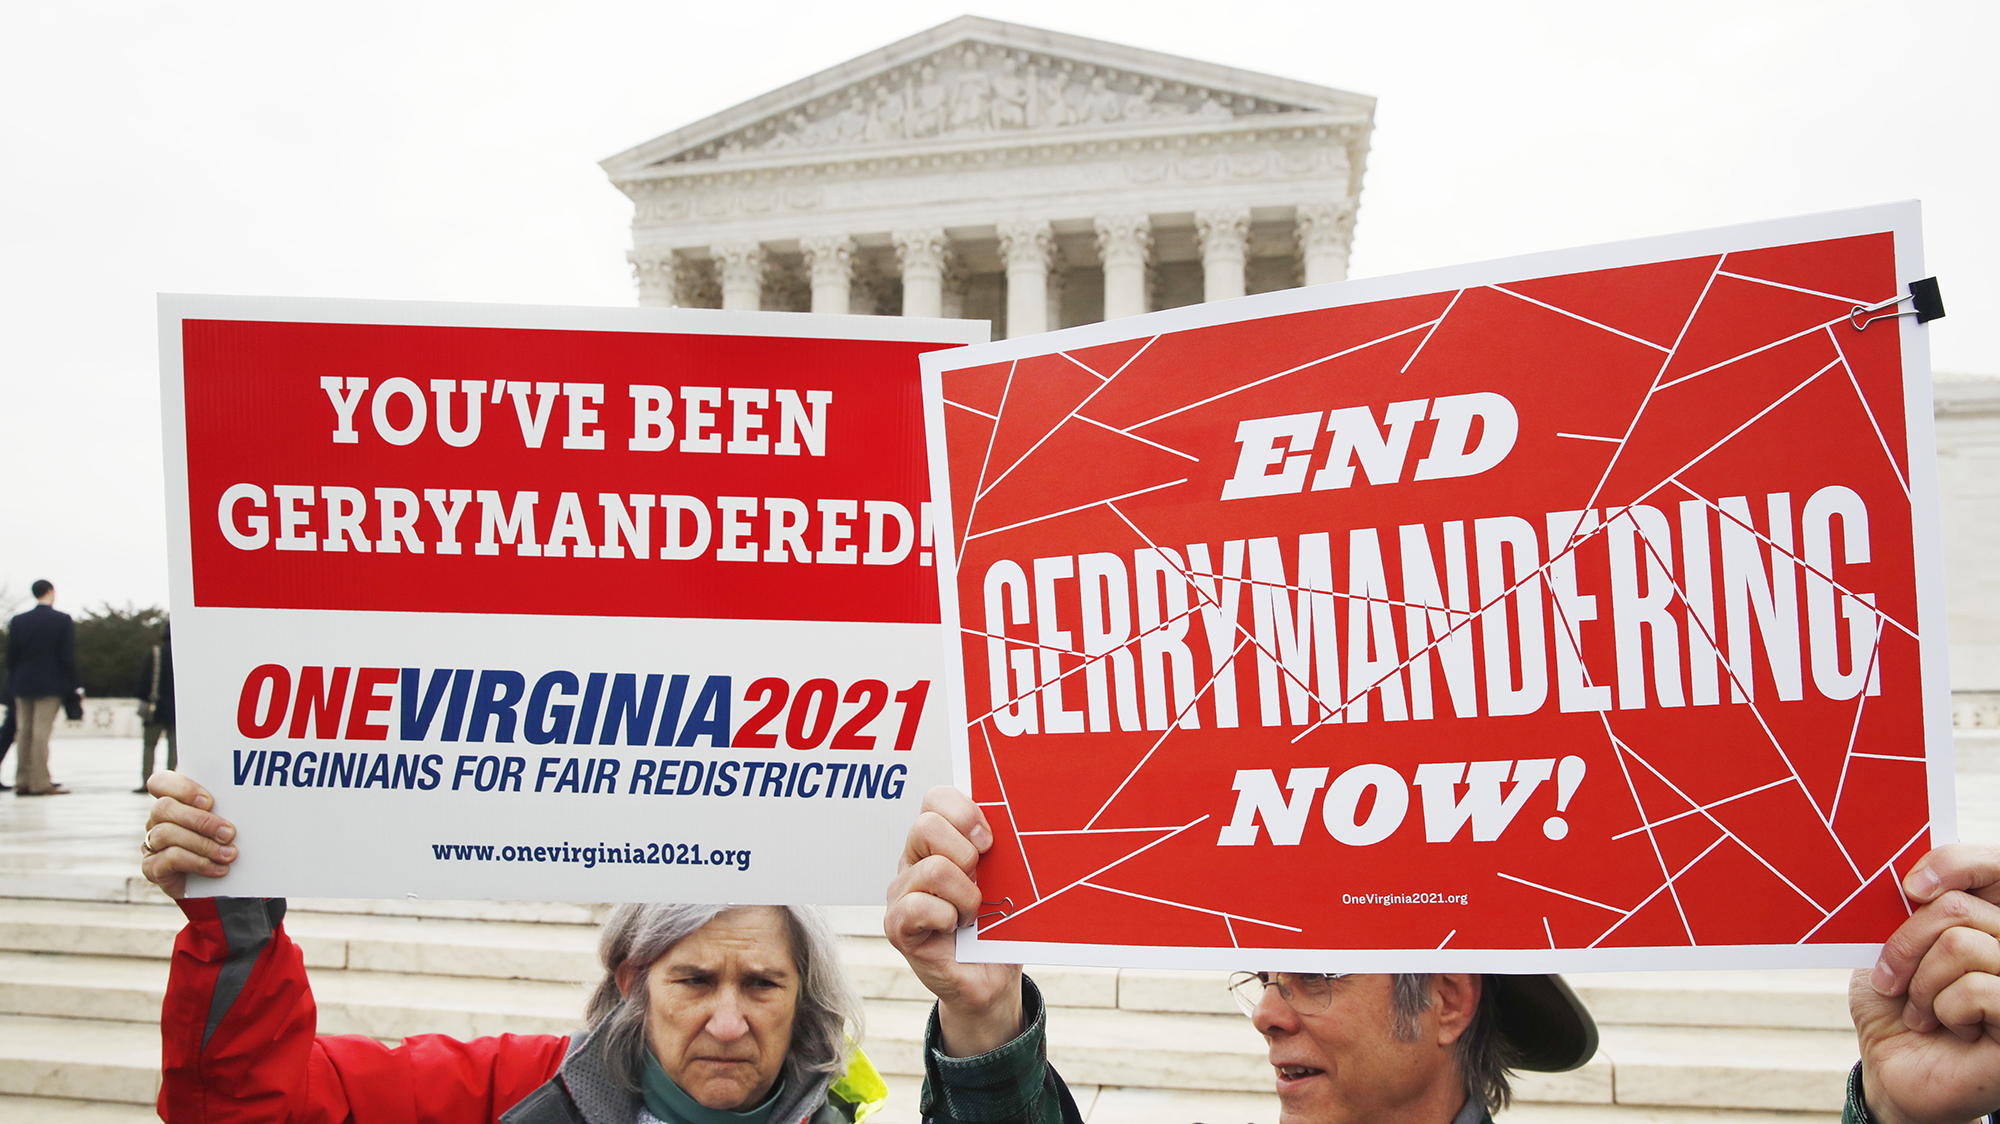 U.S. Supreme Court leaves open window for ending gerrymandering